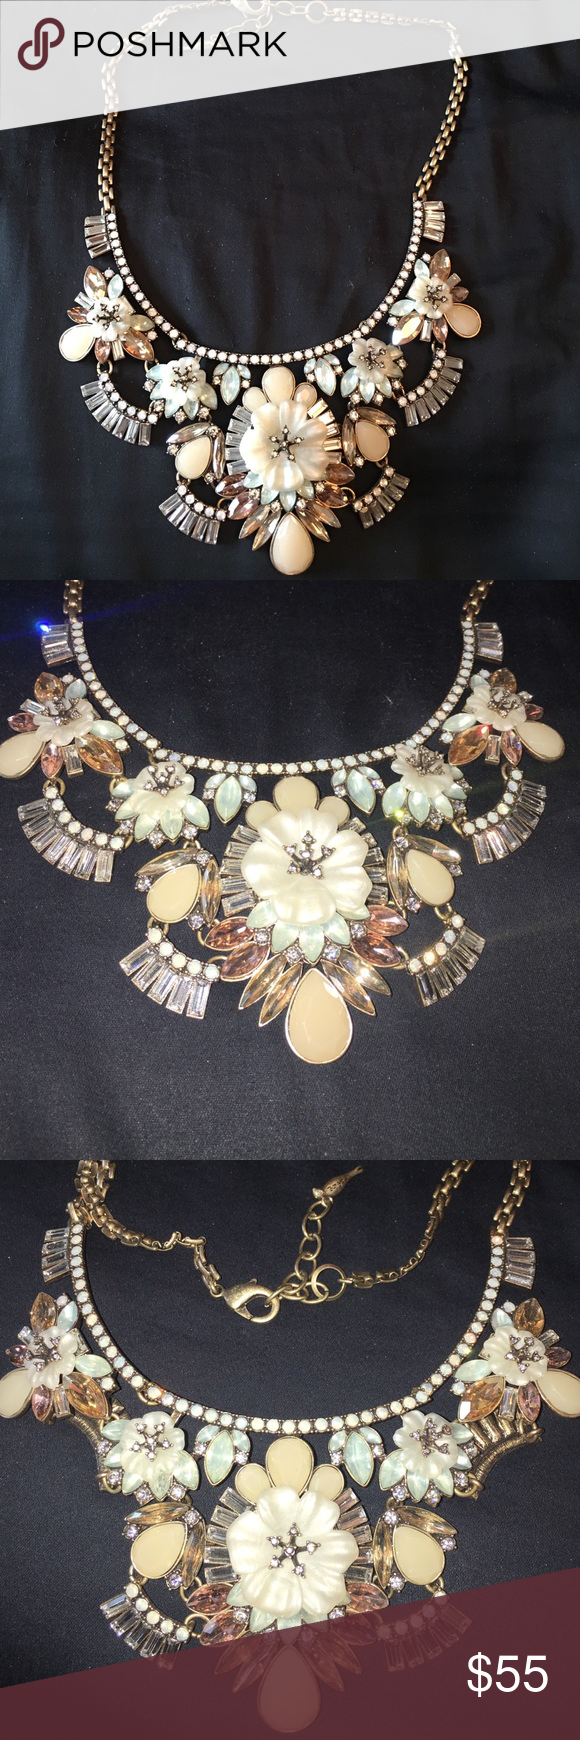 Chloe and Isabel necklace Such a statement piece! Retailed for $130- I believe. Floral necklace with light pink and turquoise colors. Only worn in the photo Chloe + Isabel Jewelry Necklaces